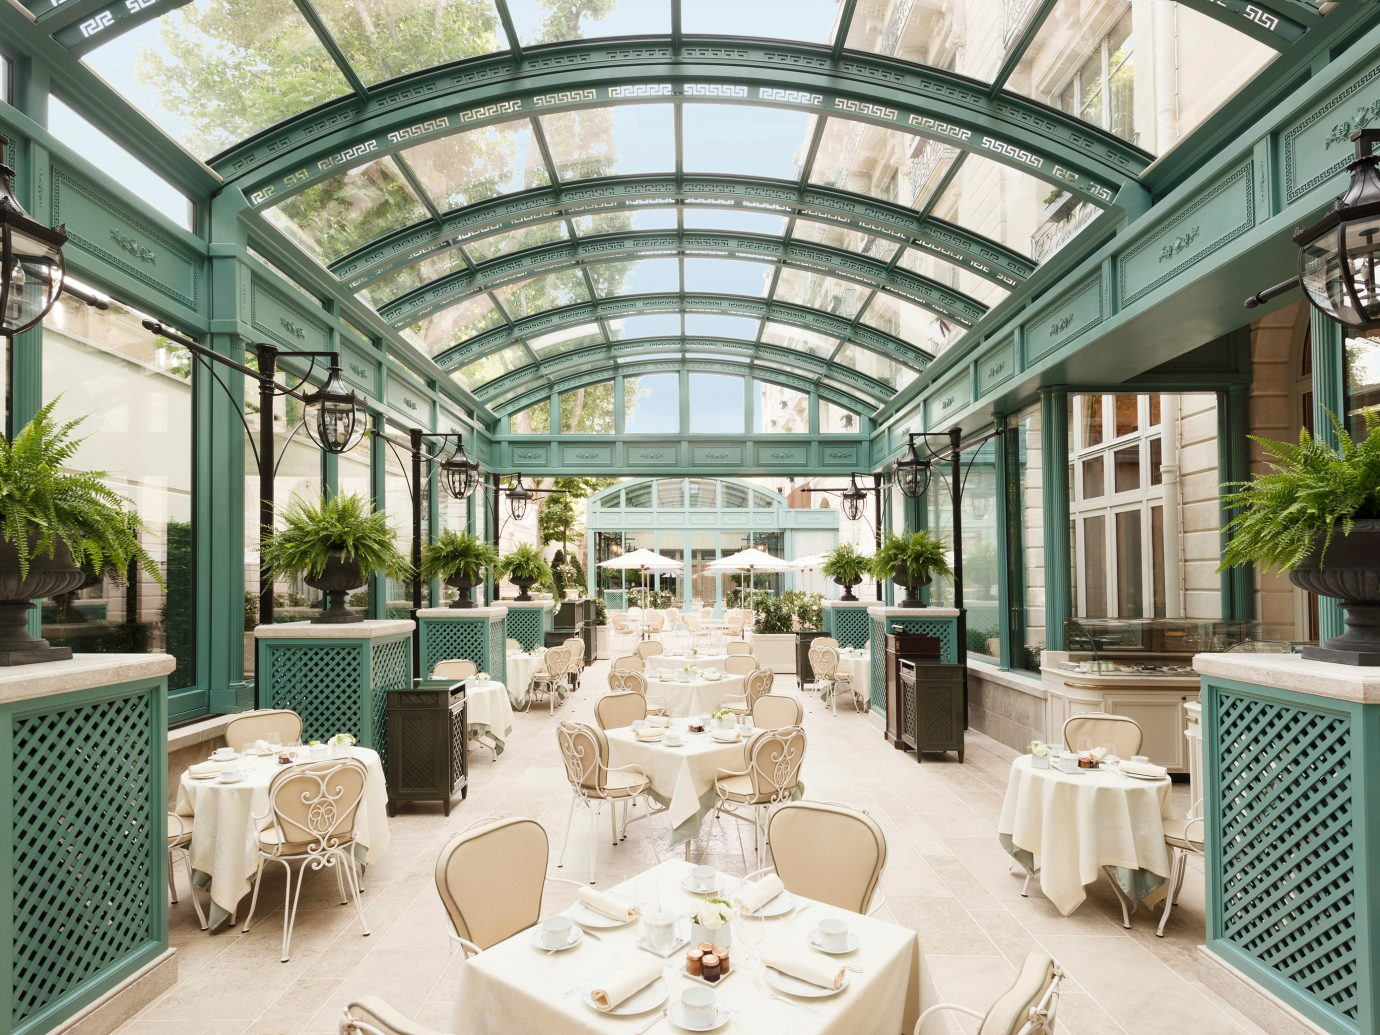 Restaurant at the Ritz Paris